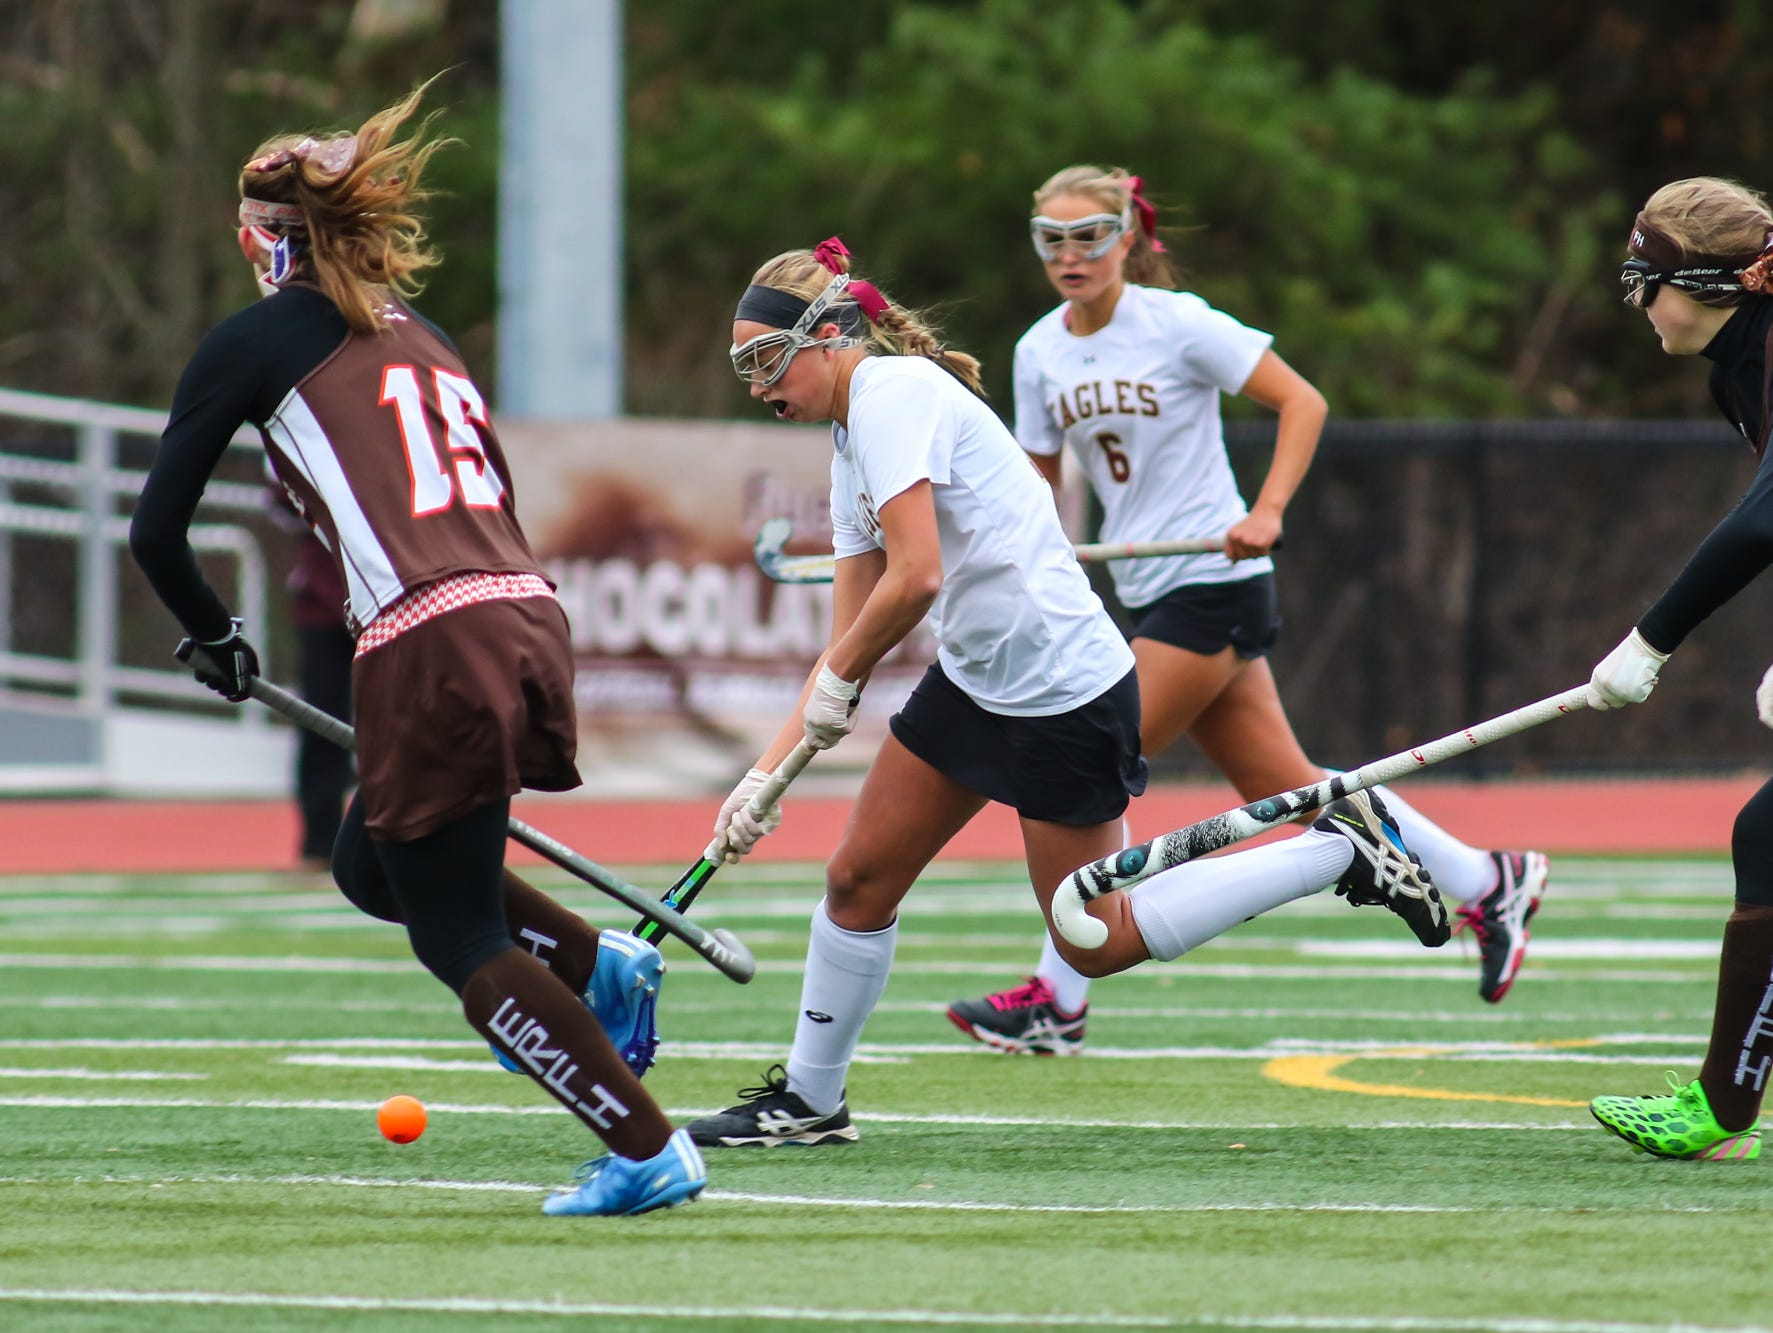 Whitney Point plays East Rochester in a Class C field hockey state semifinal on Saturday at Maine-Endwell.